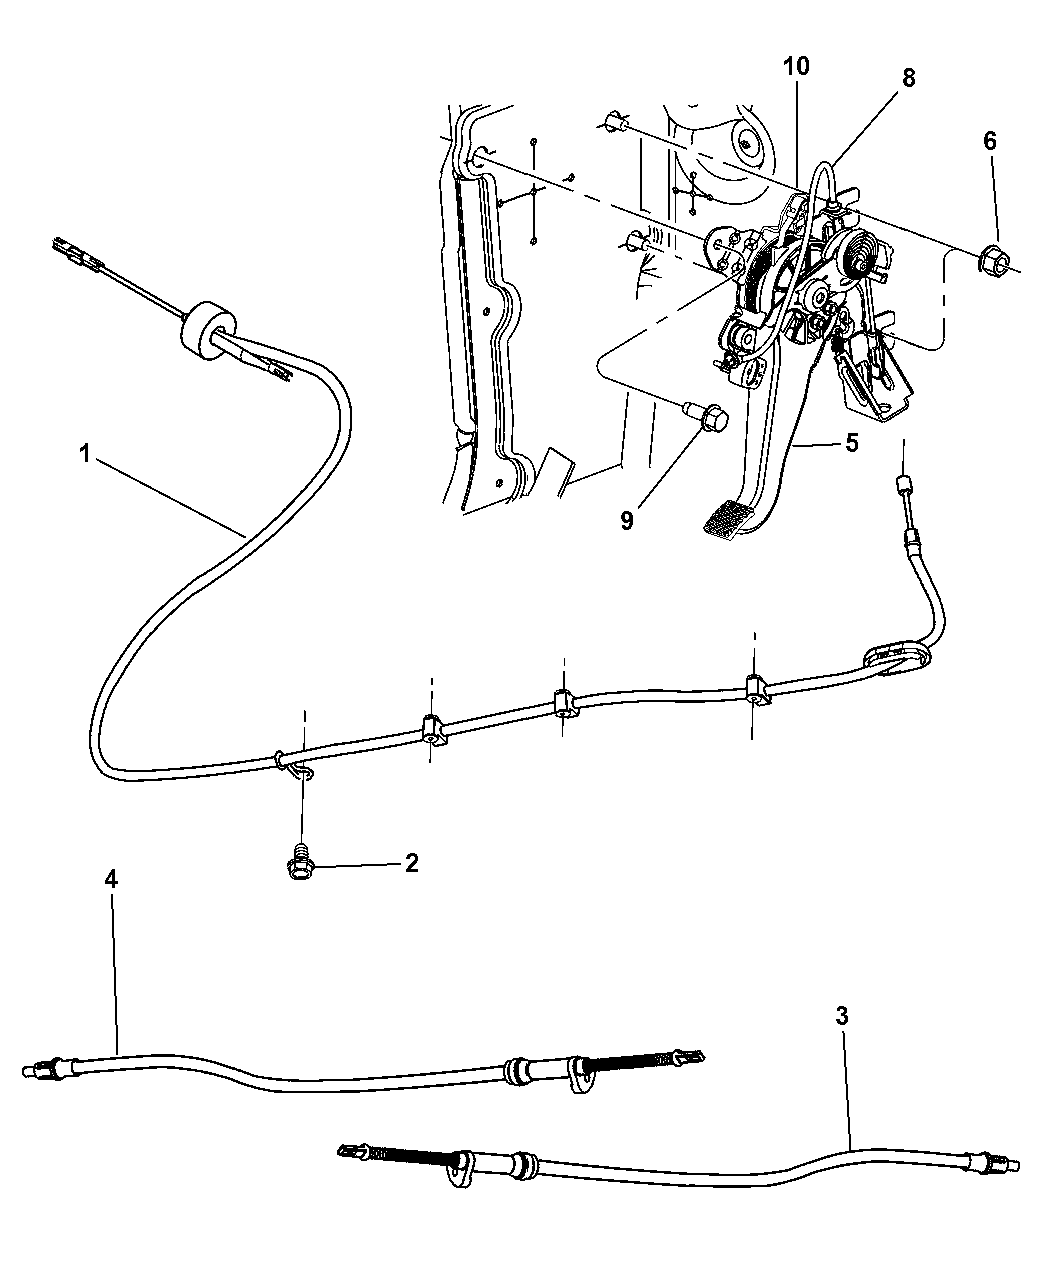 2005 Chrysler 300 Lever Assembly Cables Parking Brake Marine Cooling Diagram